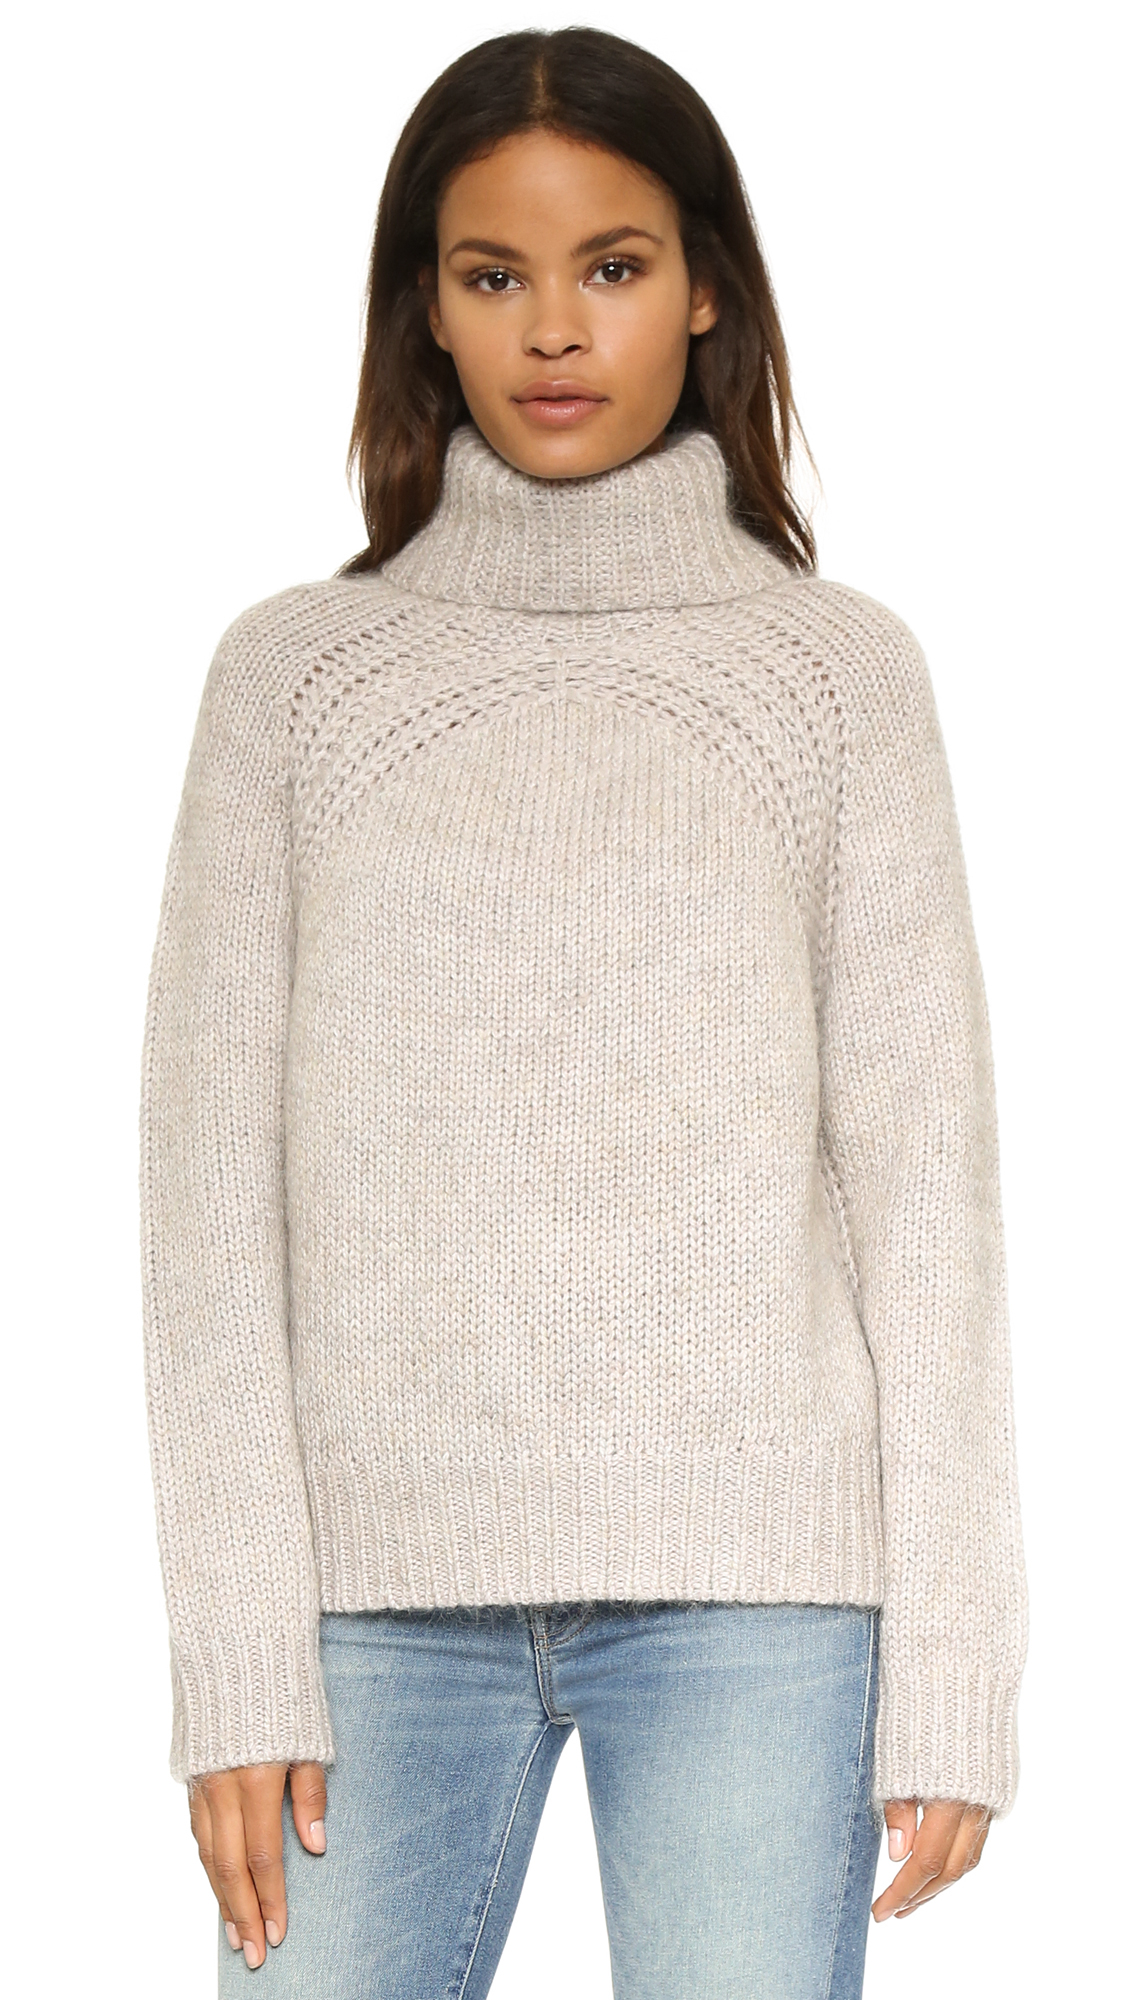 76aa40940a60f Raquel Allegra Turtleneck Pullover Sweater in Natural - Lyst